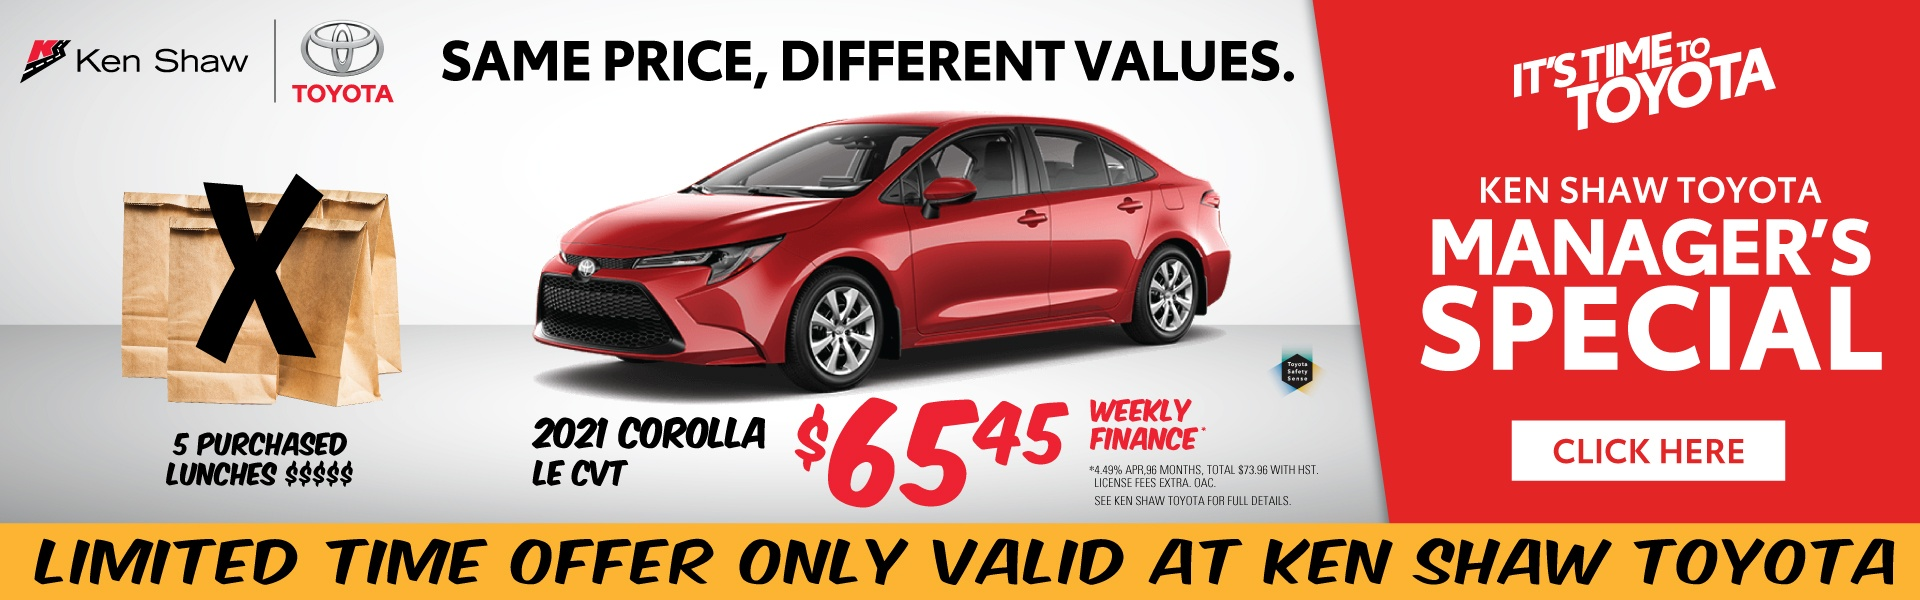 Ken Shaw Toyota Toronto Ontario 2021 Corolla LE CVT Sale best affordable sedan